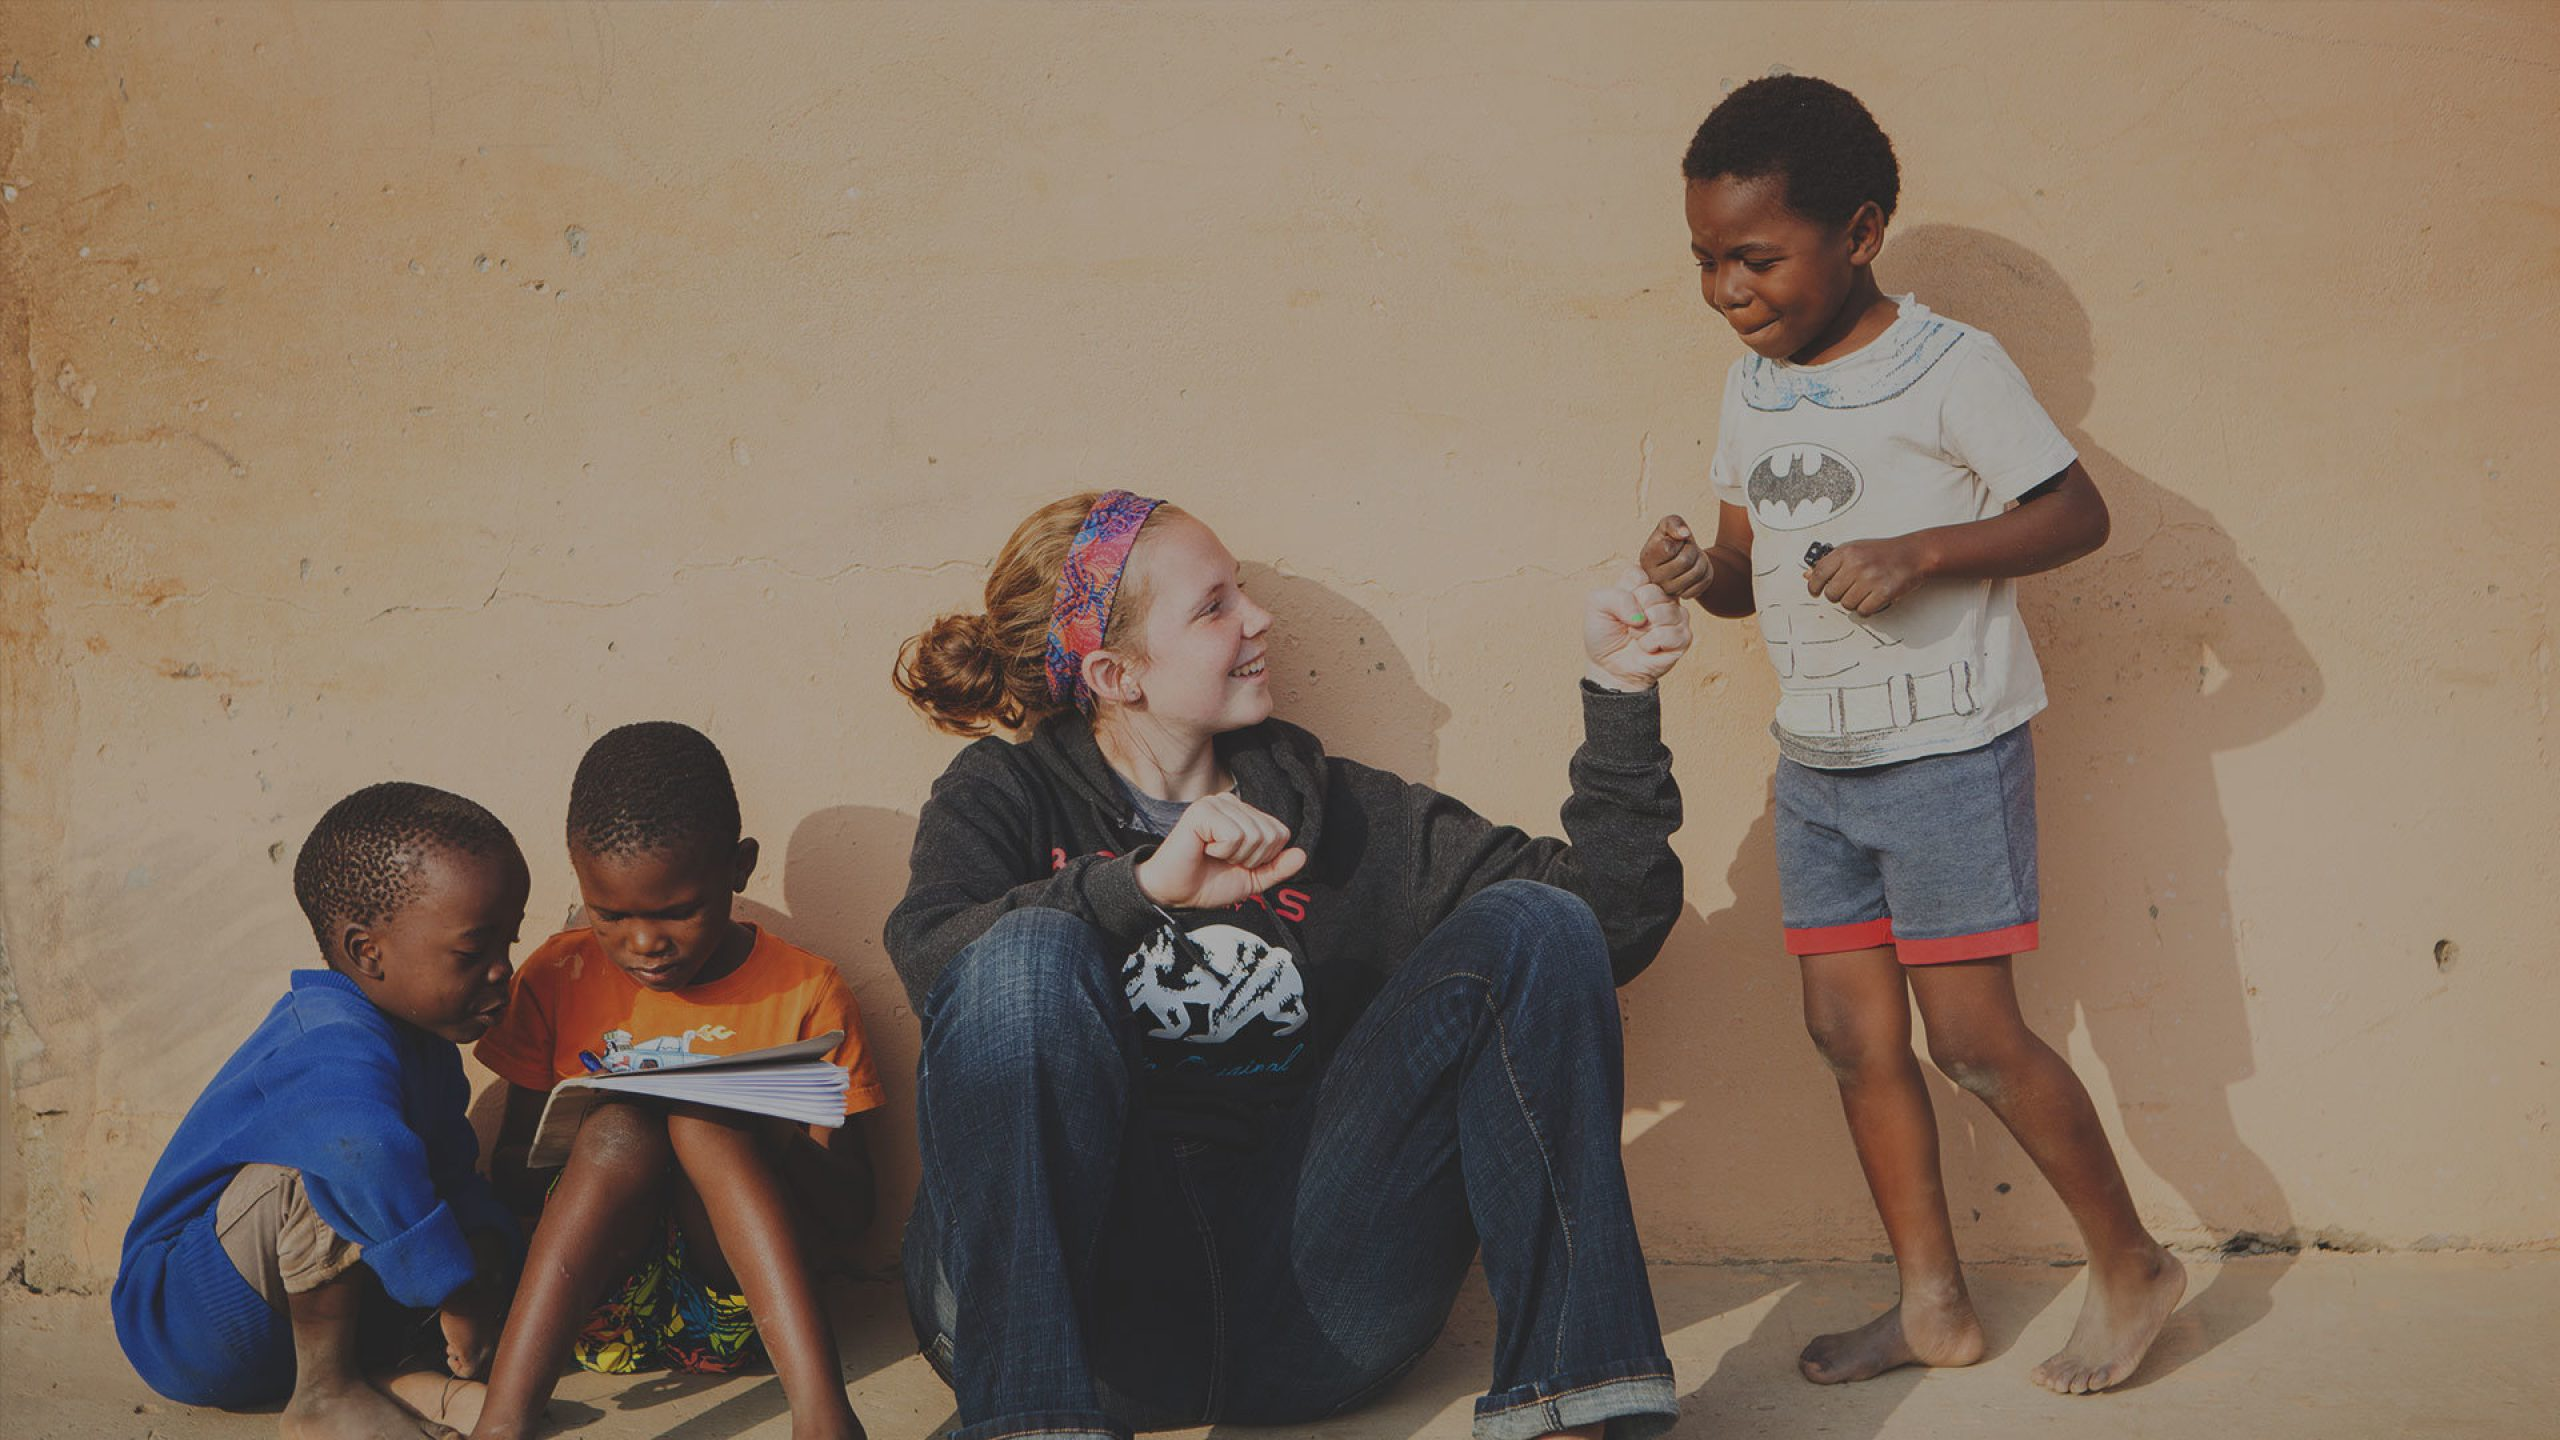 A life-changing mission trip where you will grow with God, serve with others, and make a difference!